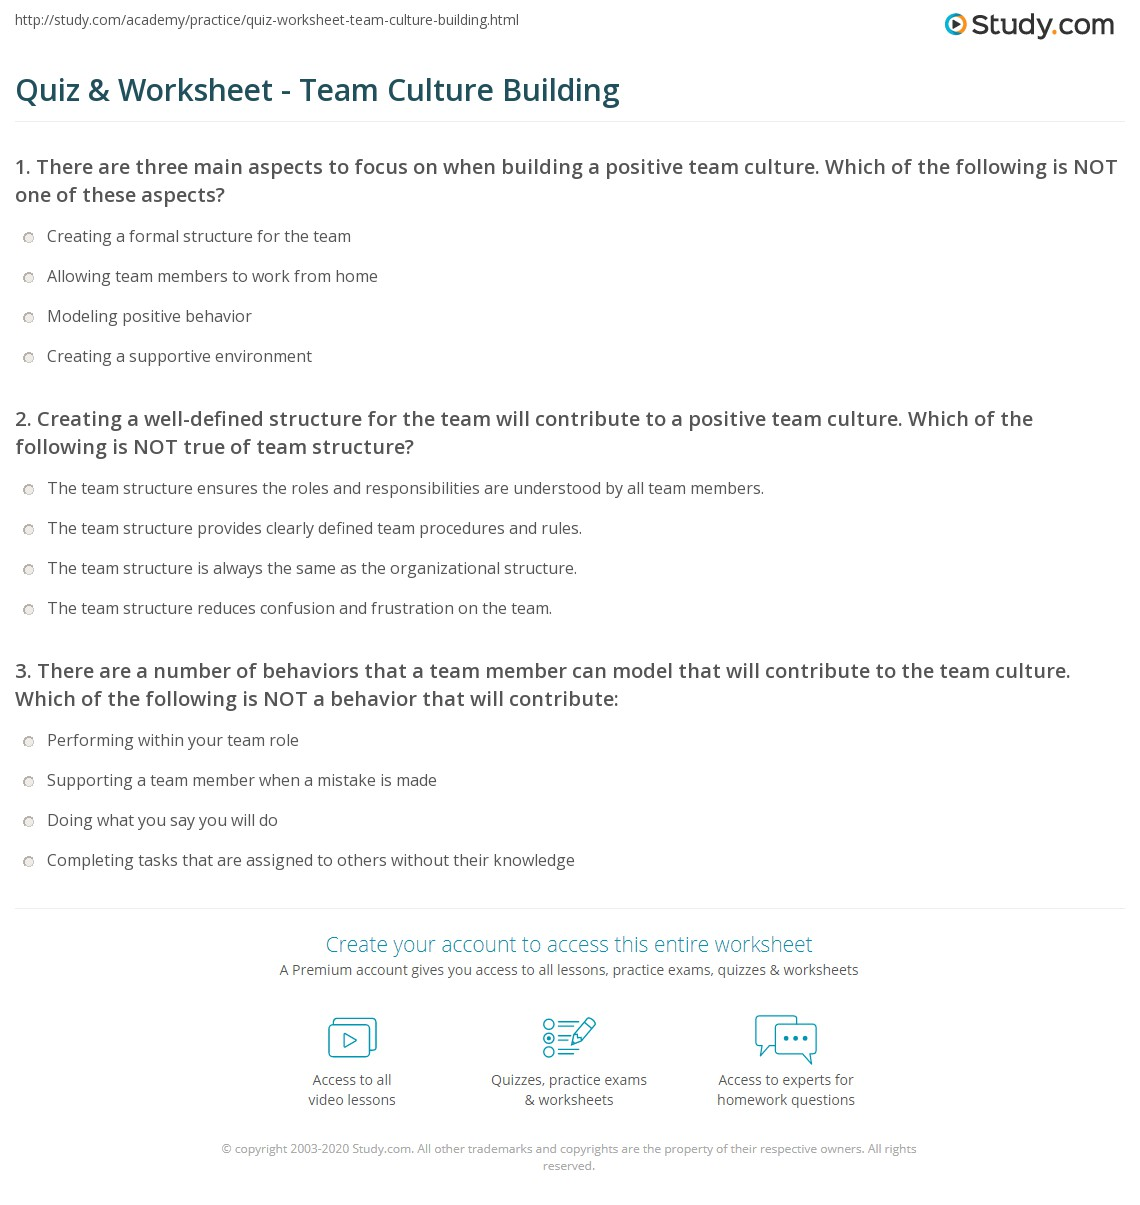 quiz worksheet team culture building study com creating a well defined structure for the team will contribute to a positive team culture all of the following are benefits of the team structure except